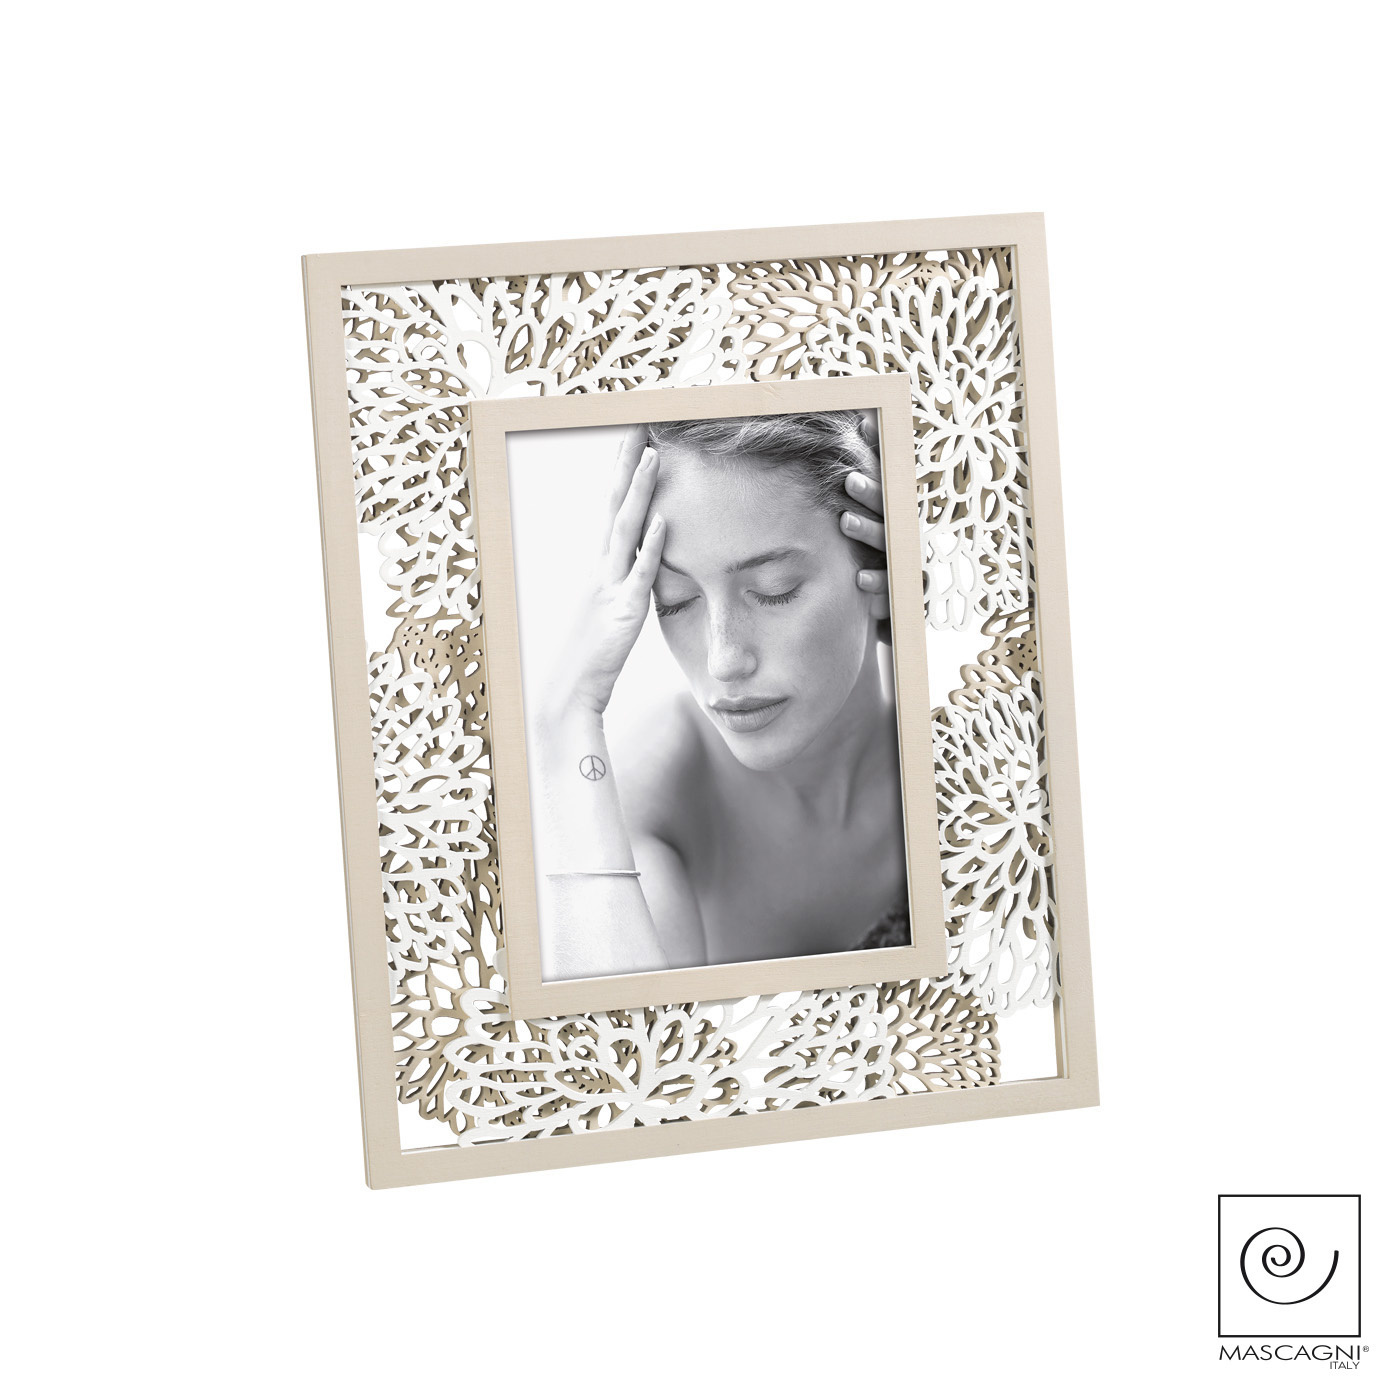 Art Mascagni A991 PHOTO FRAME 13X18